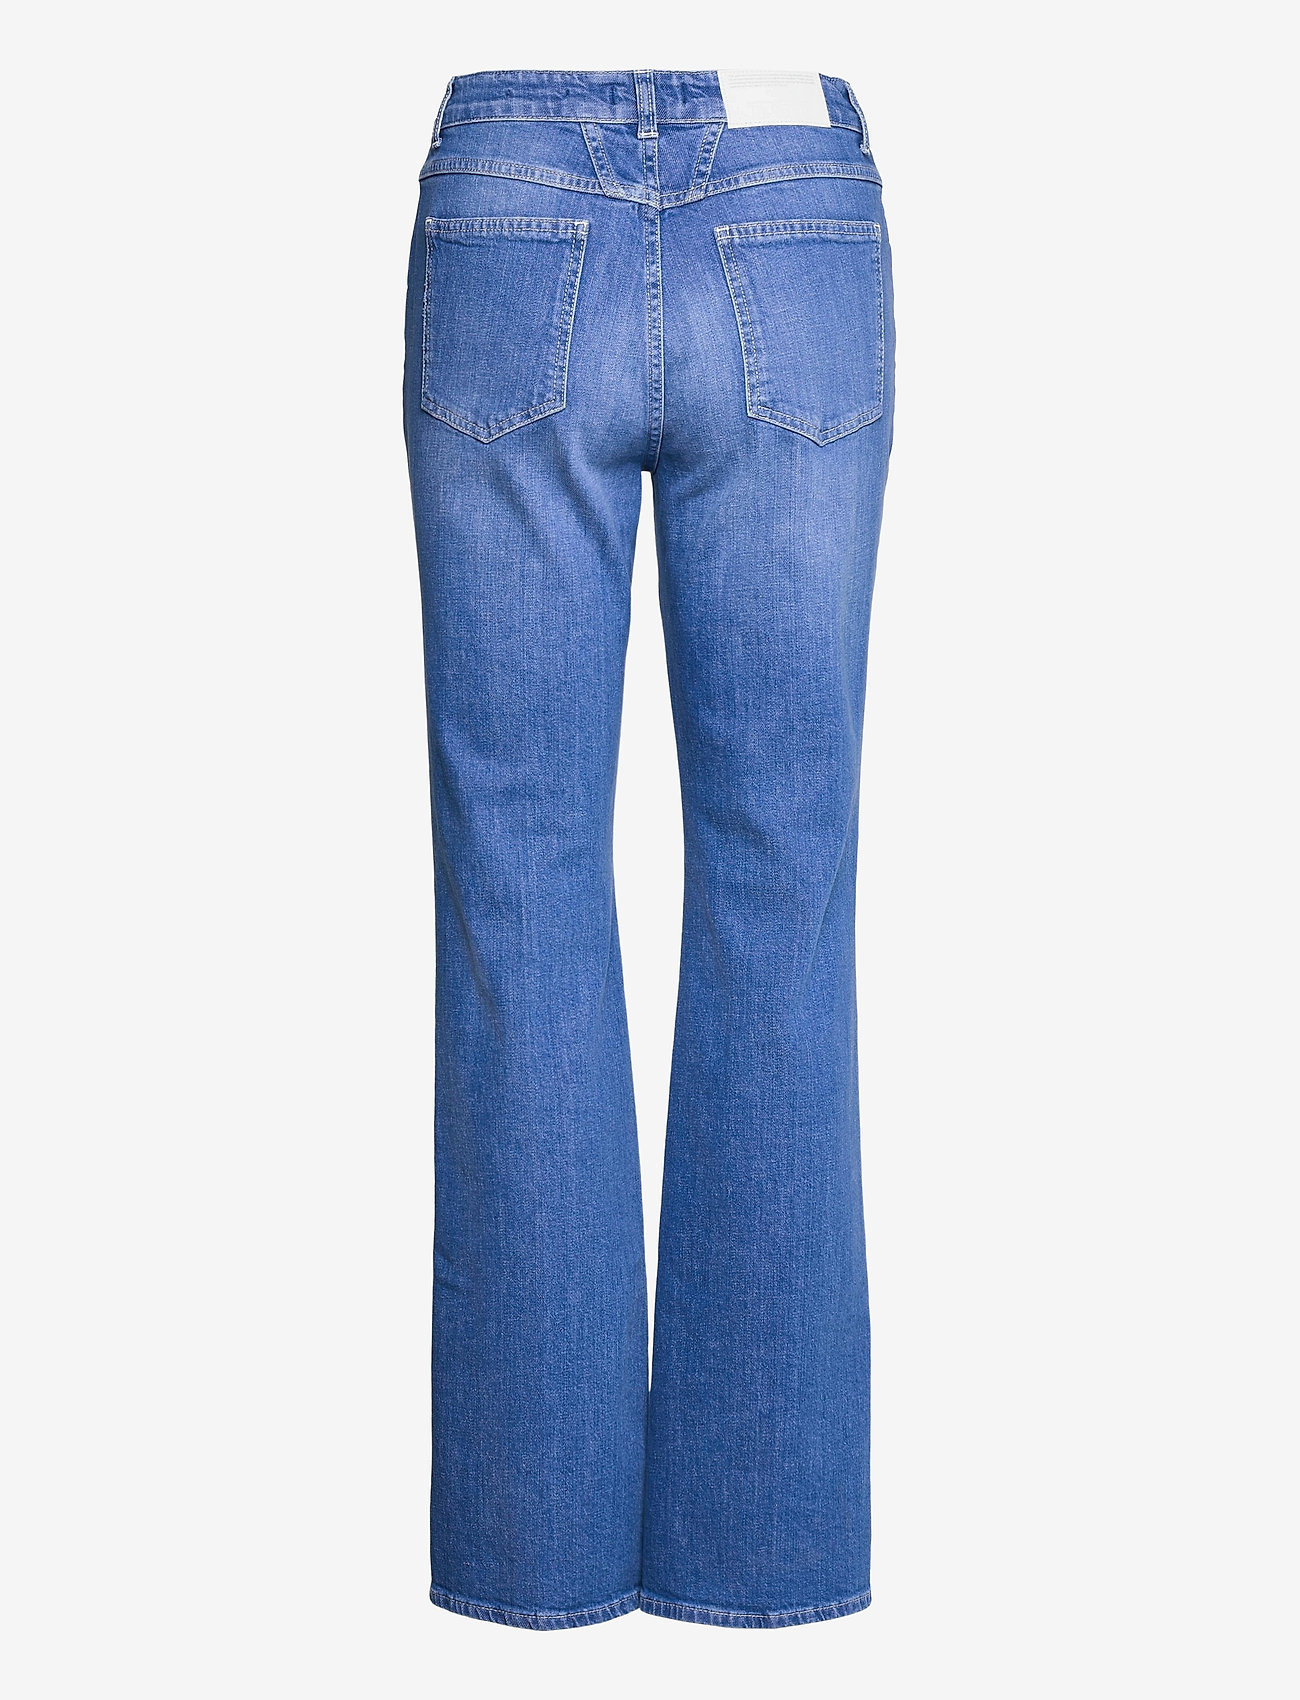 Closed - womens pant - schlaghosen - mid blue - 1